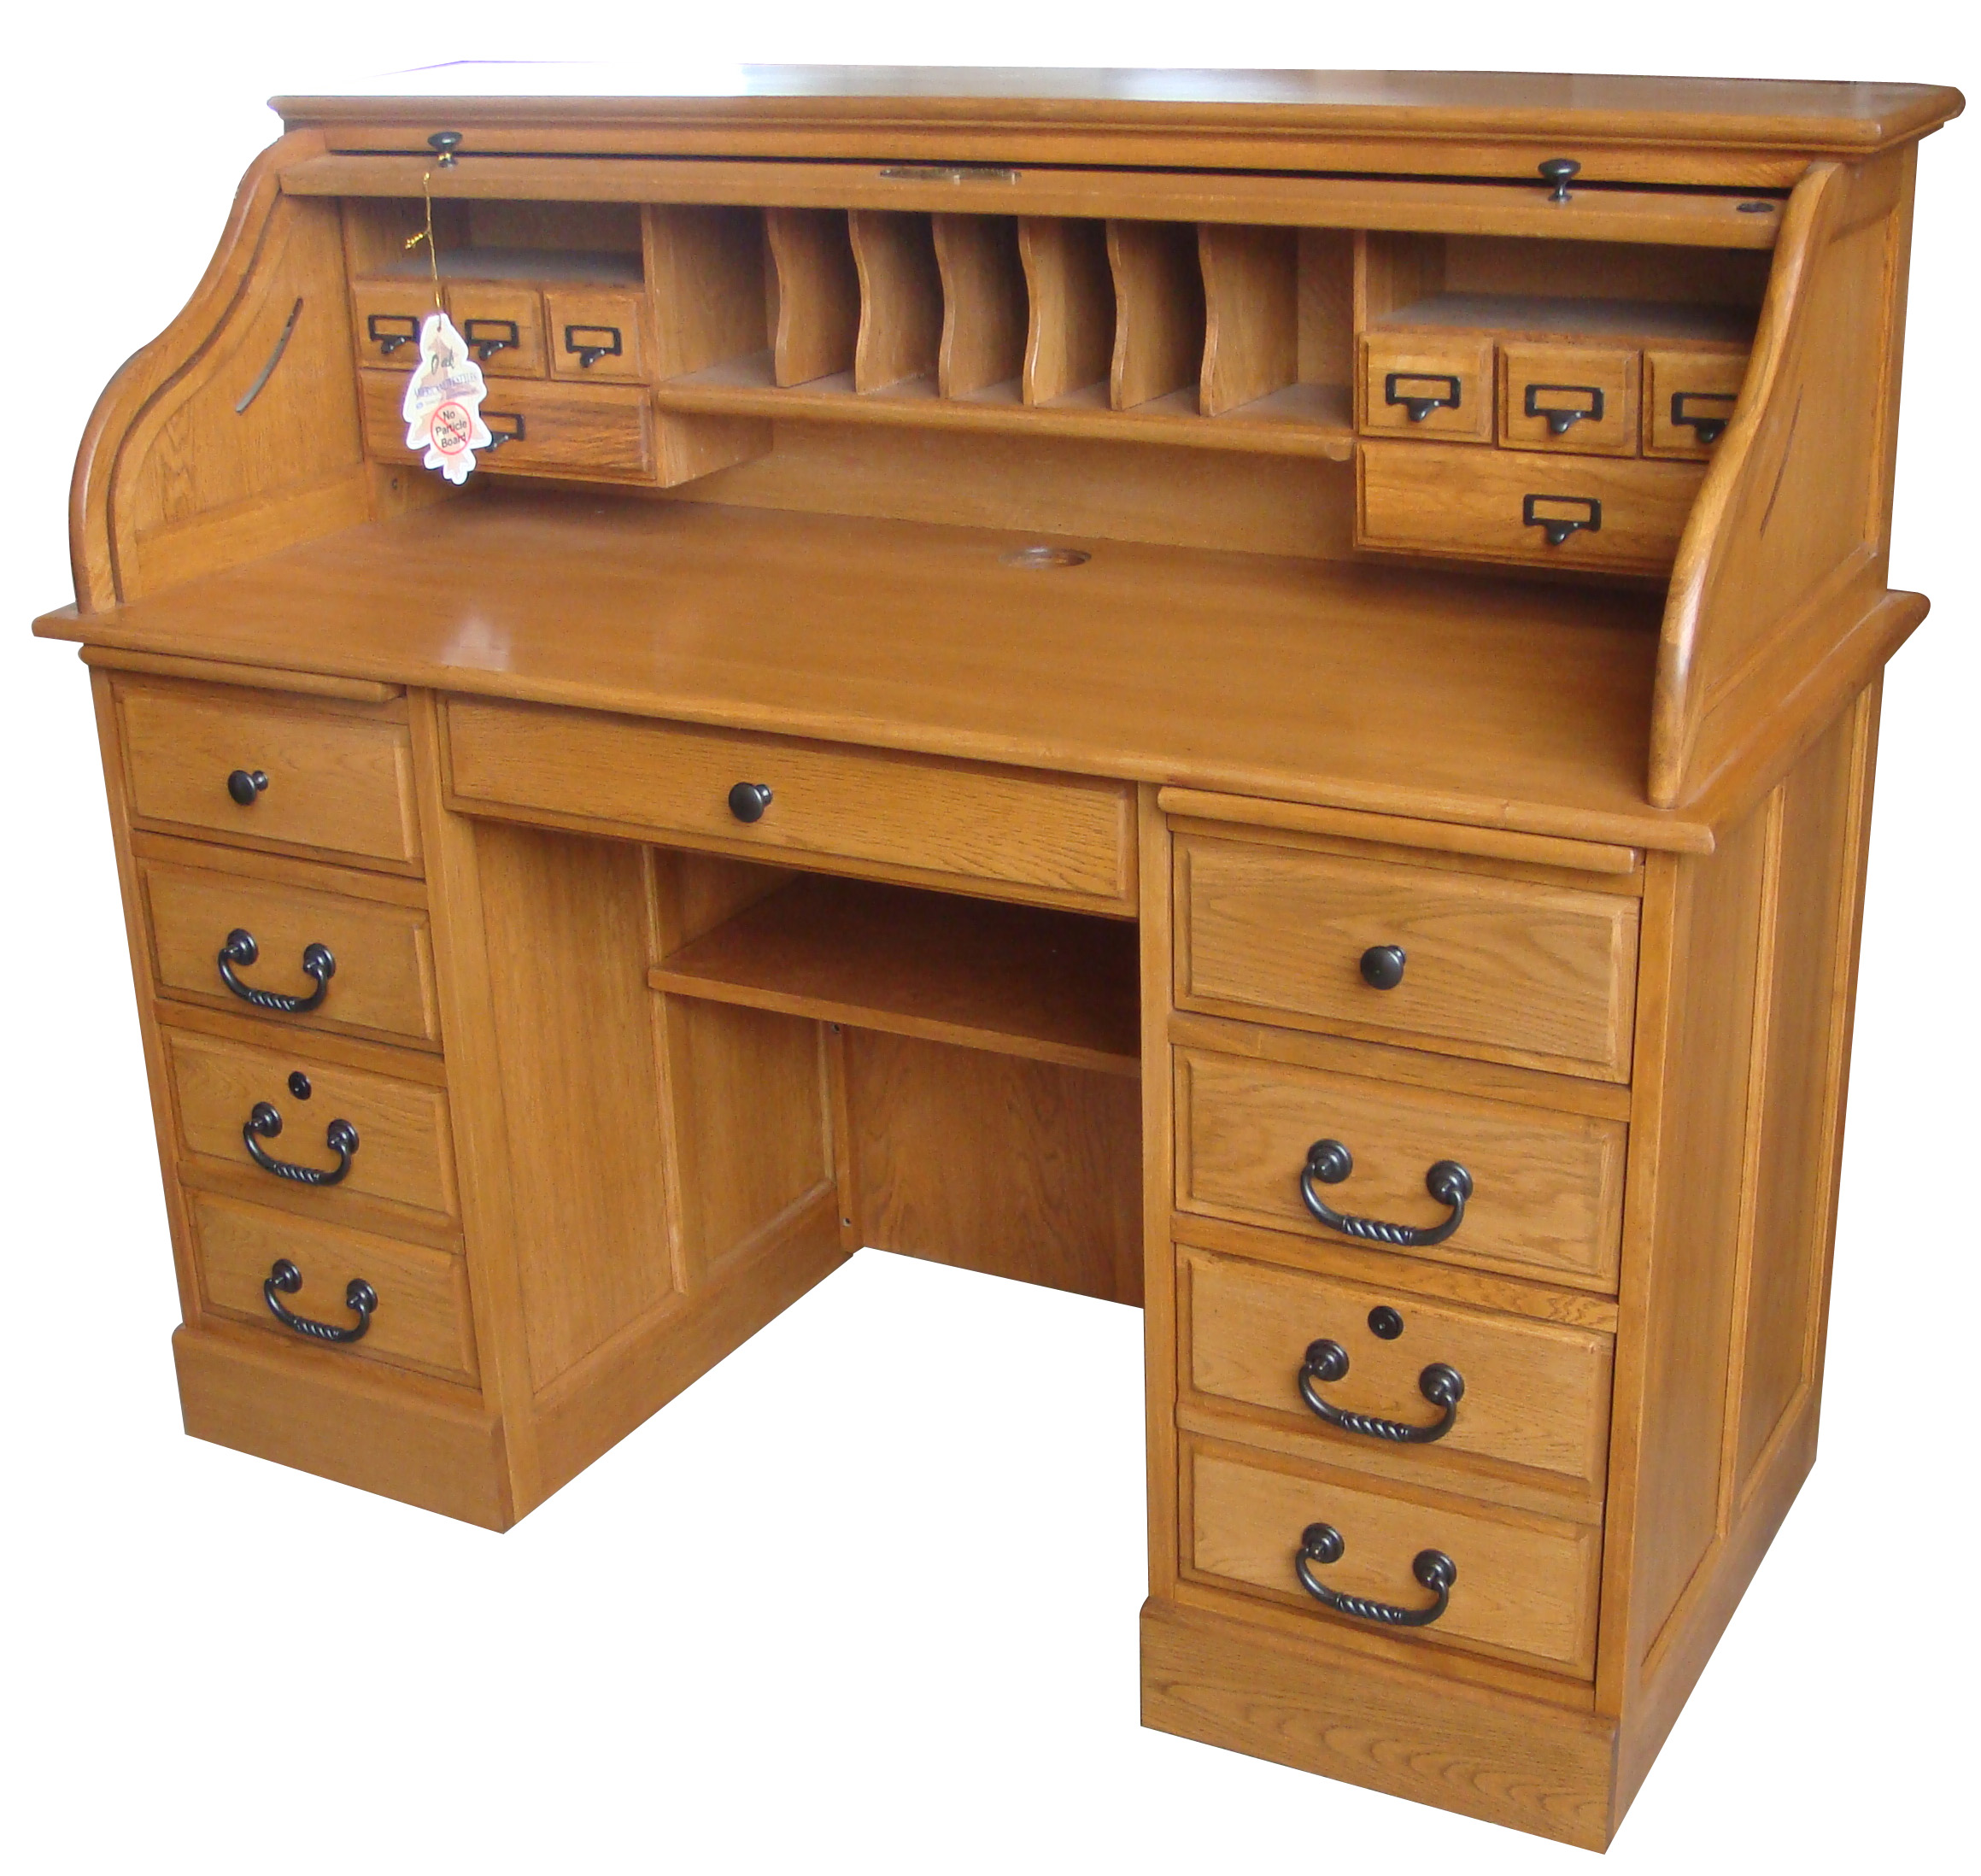 Oak Furniture Outlet Knoxville Tn Furniture Knoxville Tn